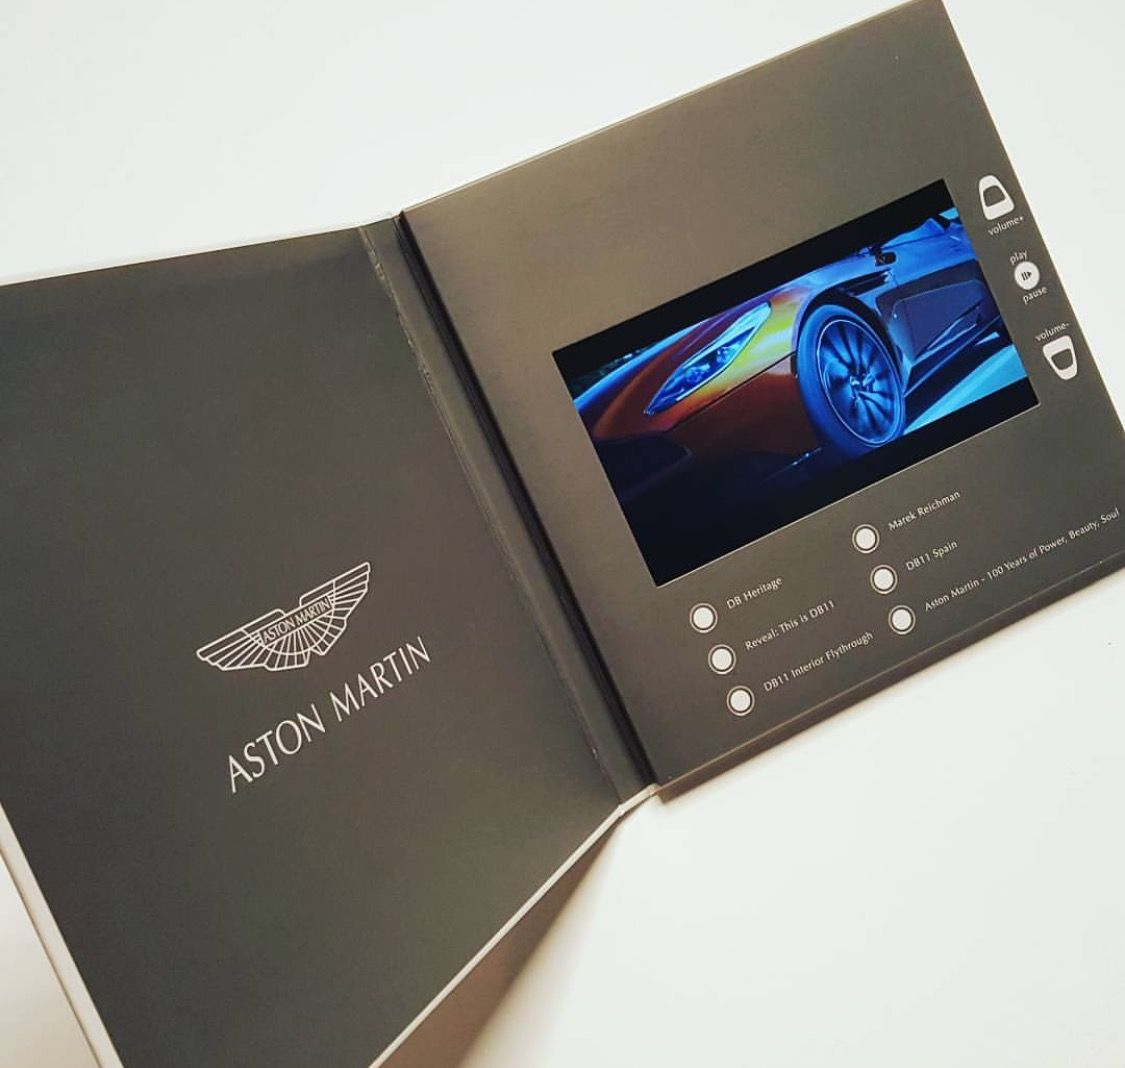 Luxury Video Invitation Cards Business Cards And Photo Album Slaylebrity Electronic Cards Invitation Cards Wedding Cards